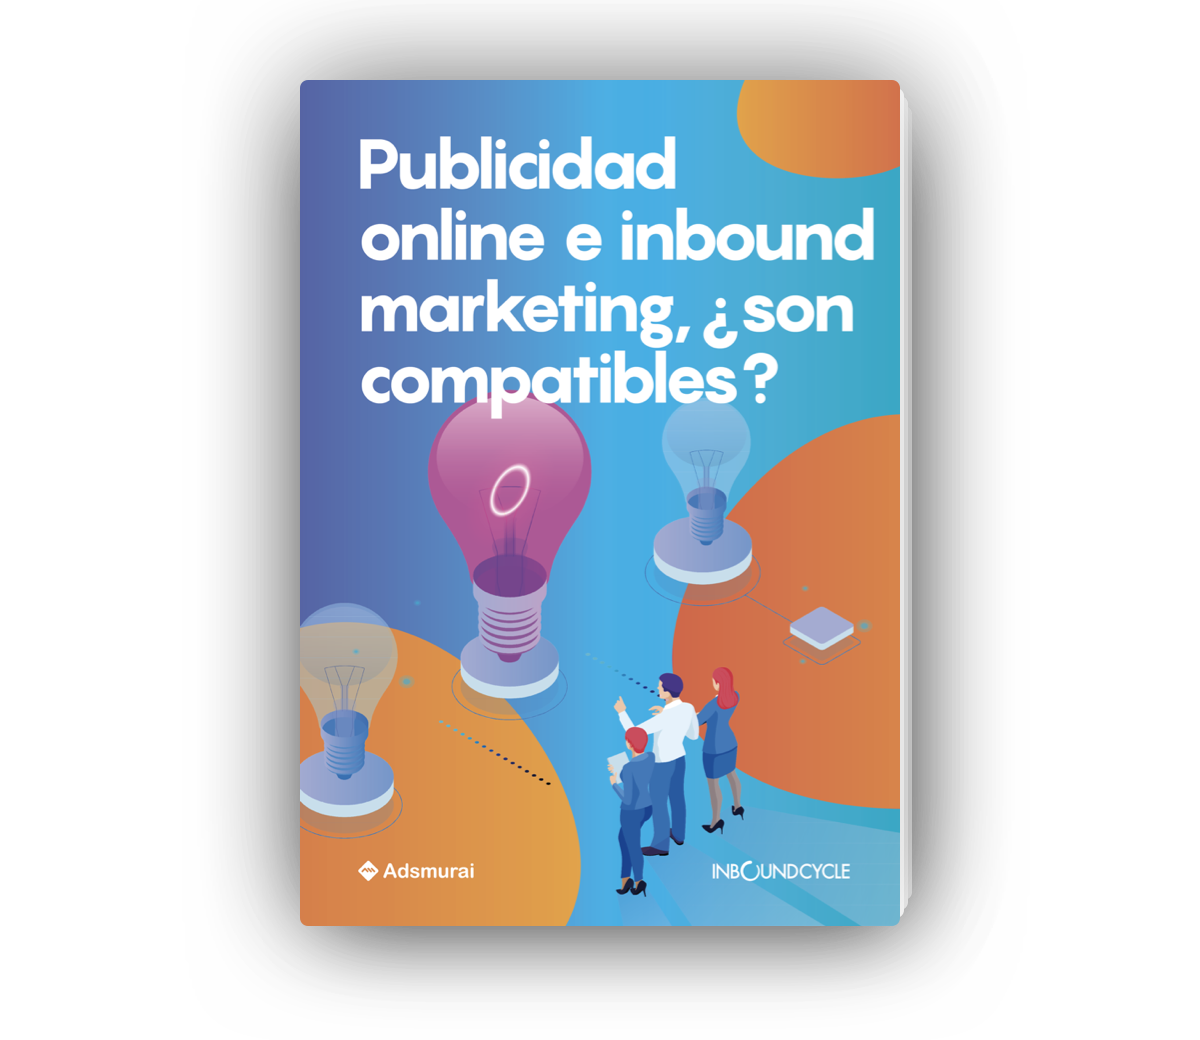 Portada - Email - Publicidad online e inbound marketing, ¿son compatibles_